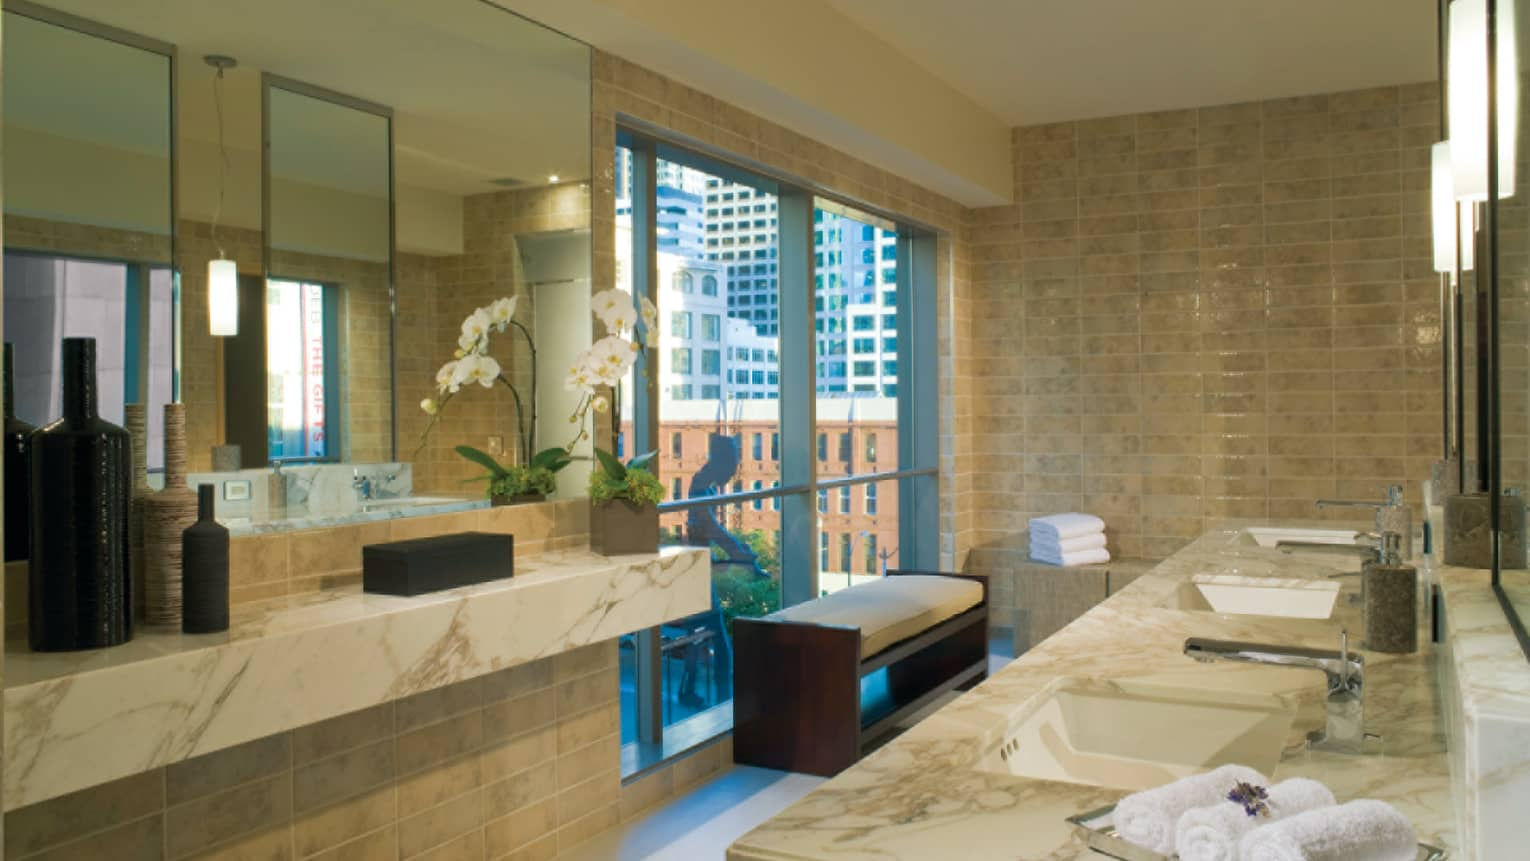 Marble sinks, rolled white towels in front of spa window